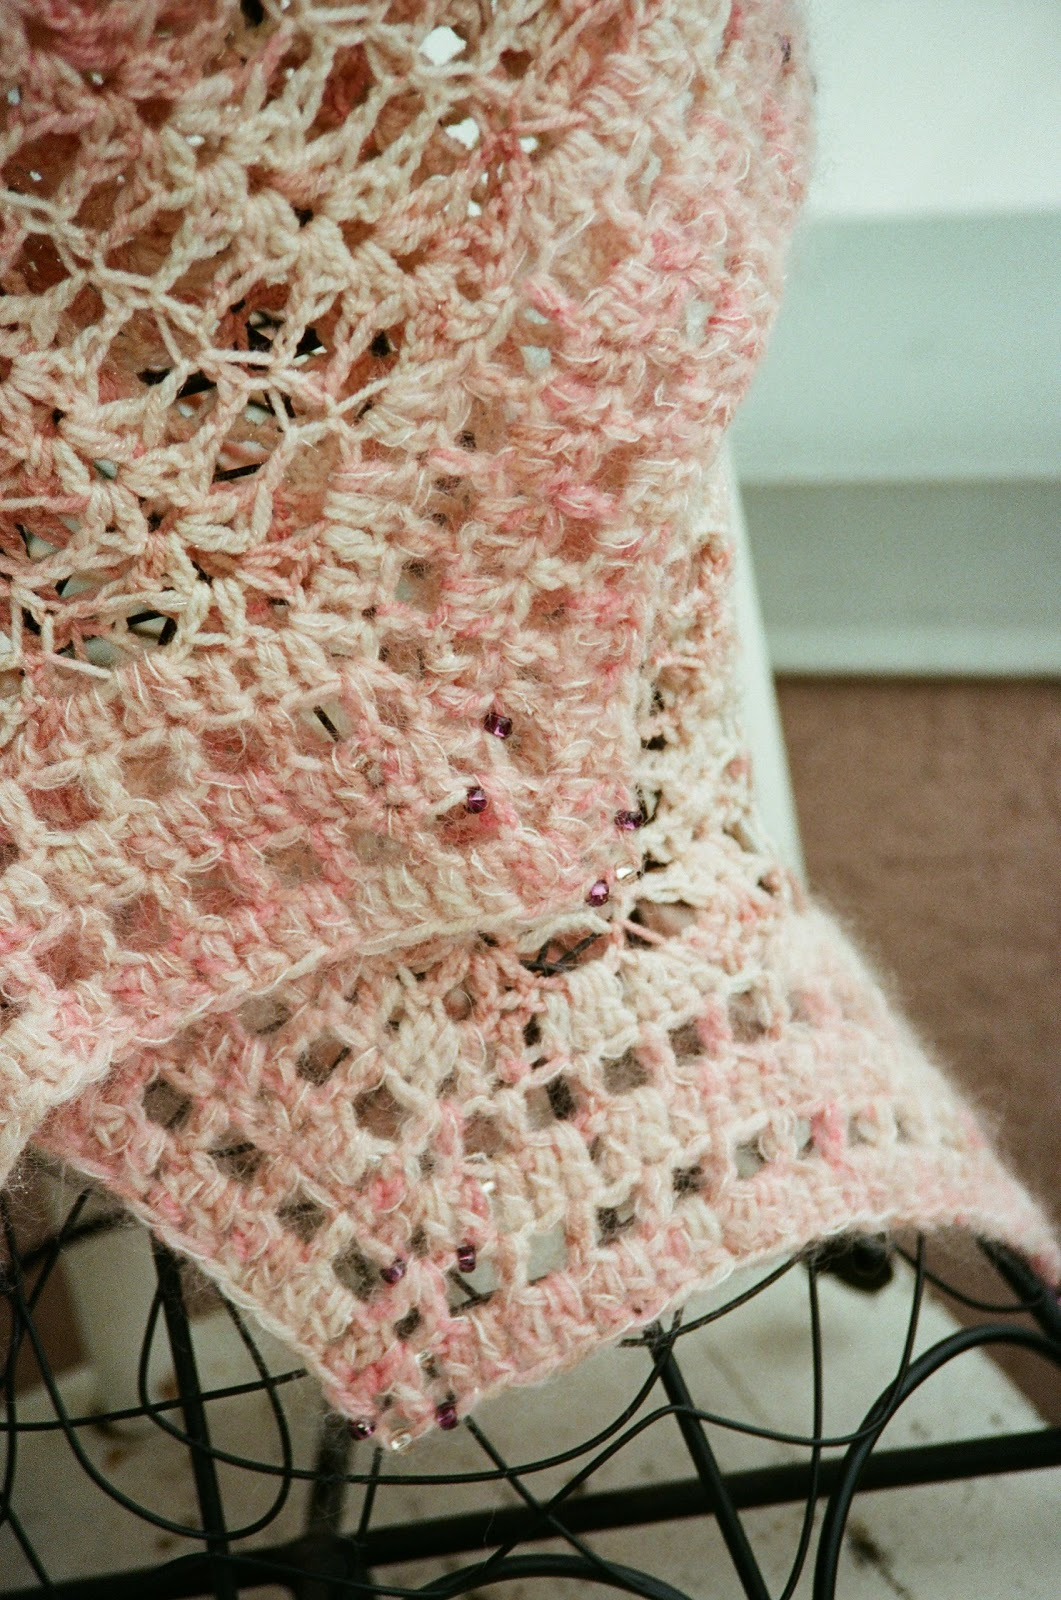 e070ef3dfd While I've recently written about my creative process, I've not really  dwelled on my crafting skills. There is no doubt, however, that 2010 saw my  crochet ...